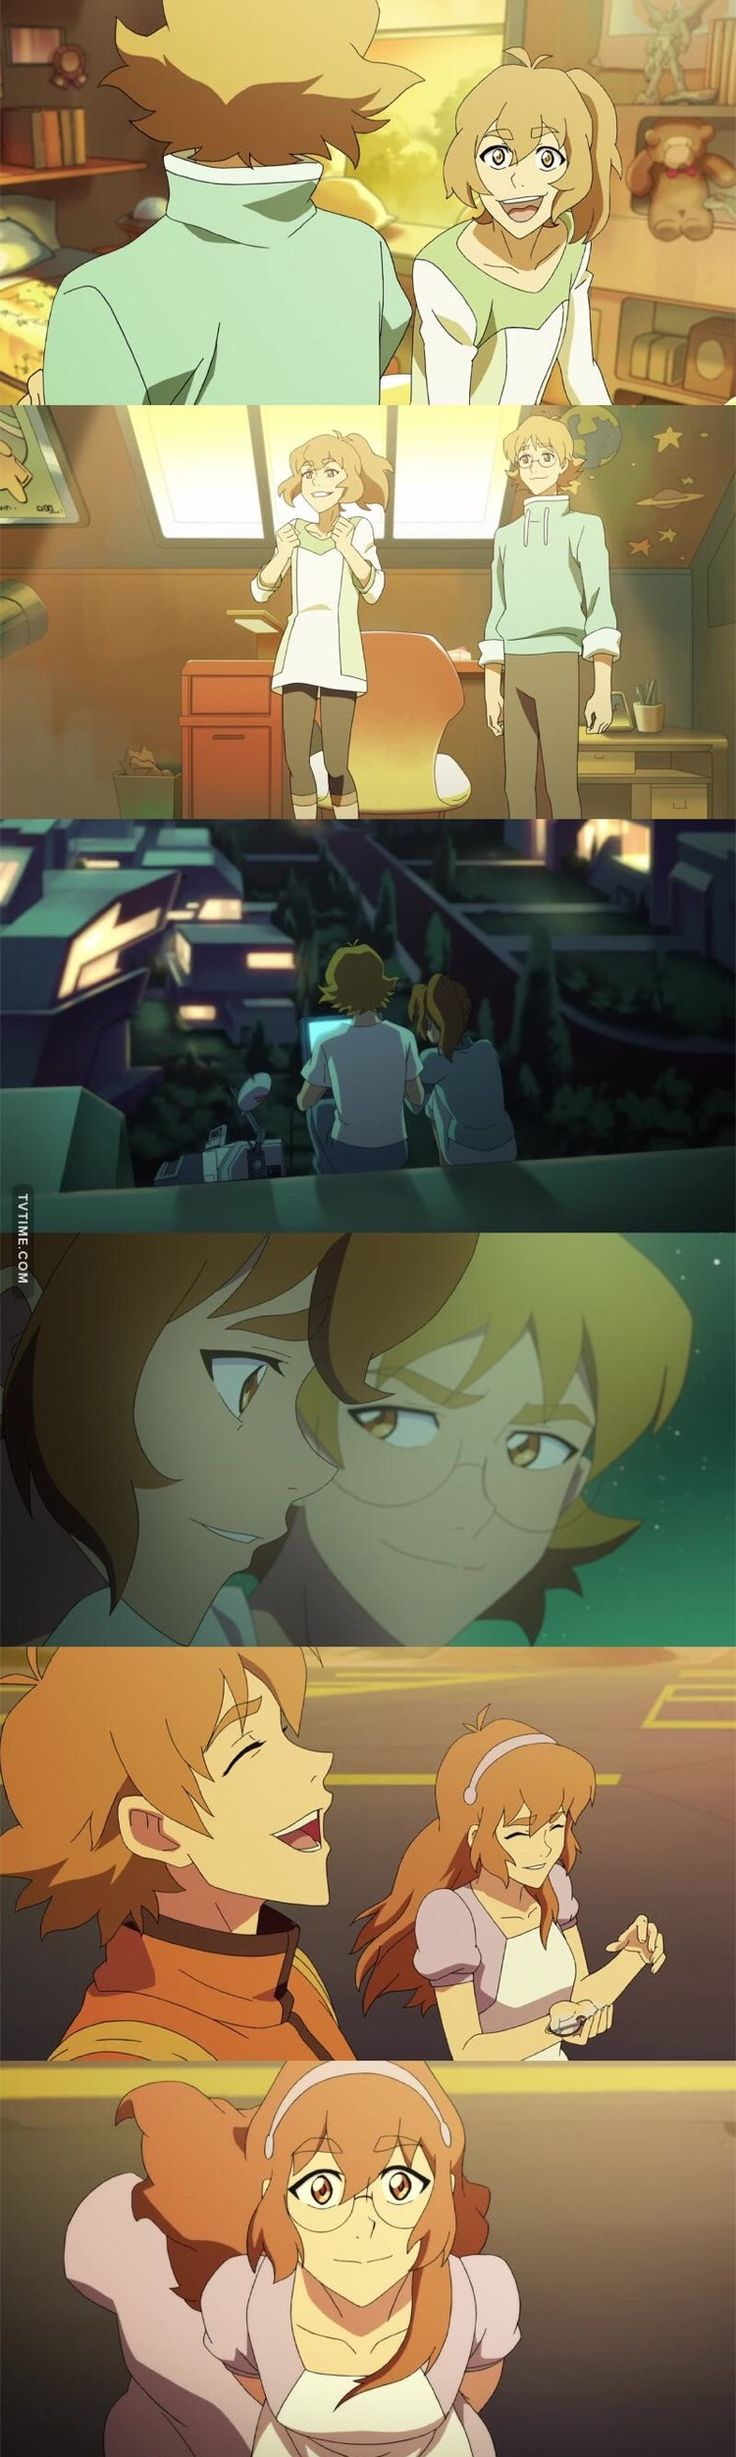 "VLD S4 - 04x02 Pidge/Katie and Matt ""Reunion: Memories of the Holt siblings"""